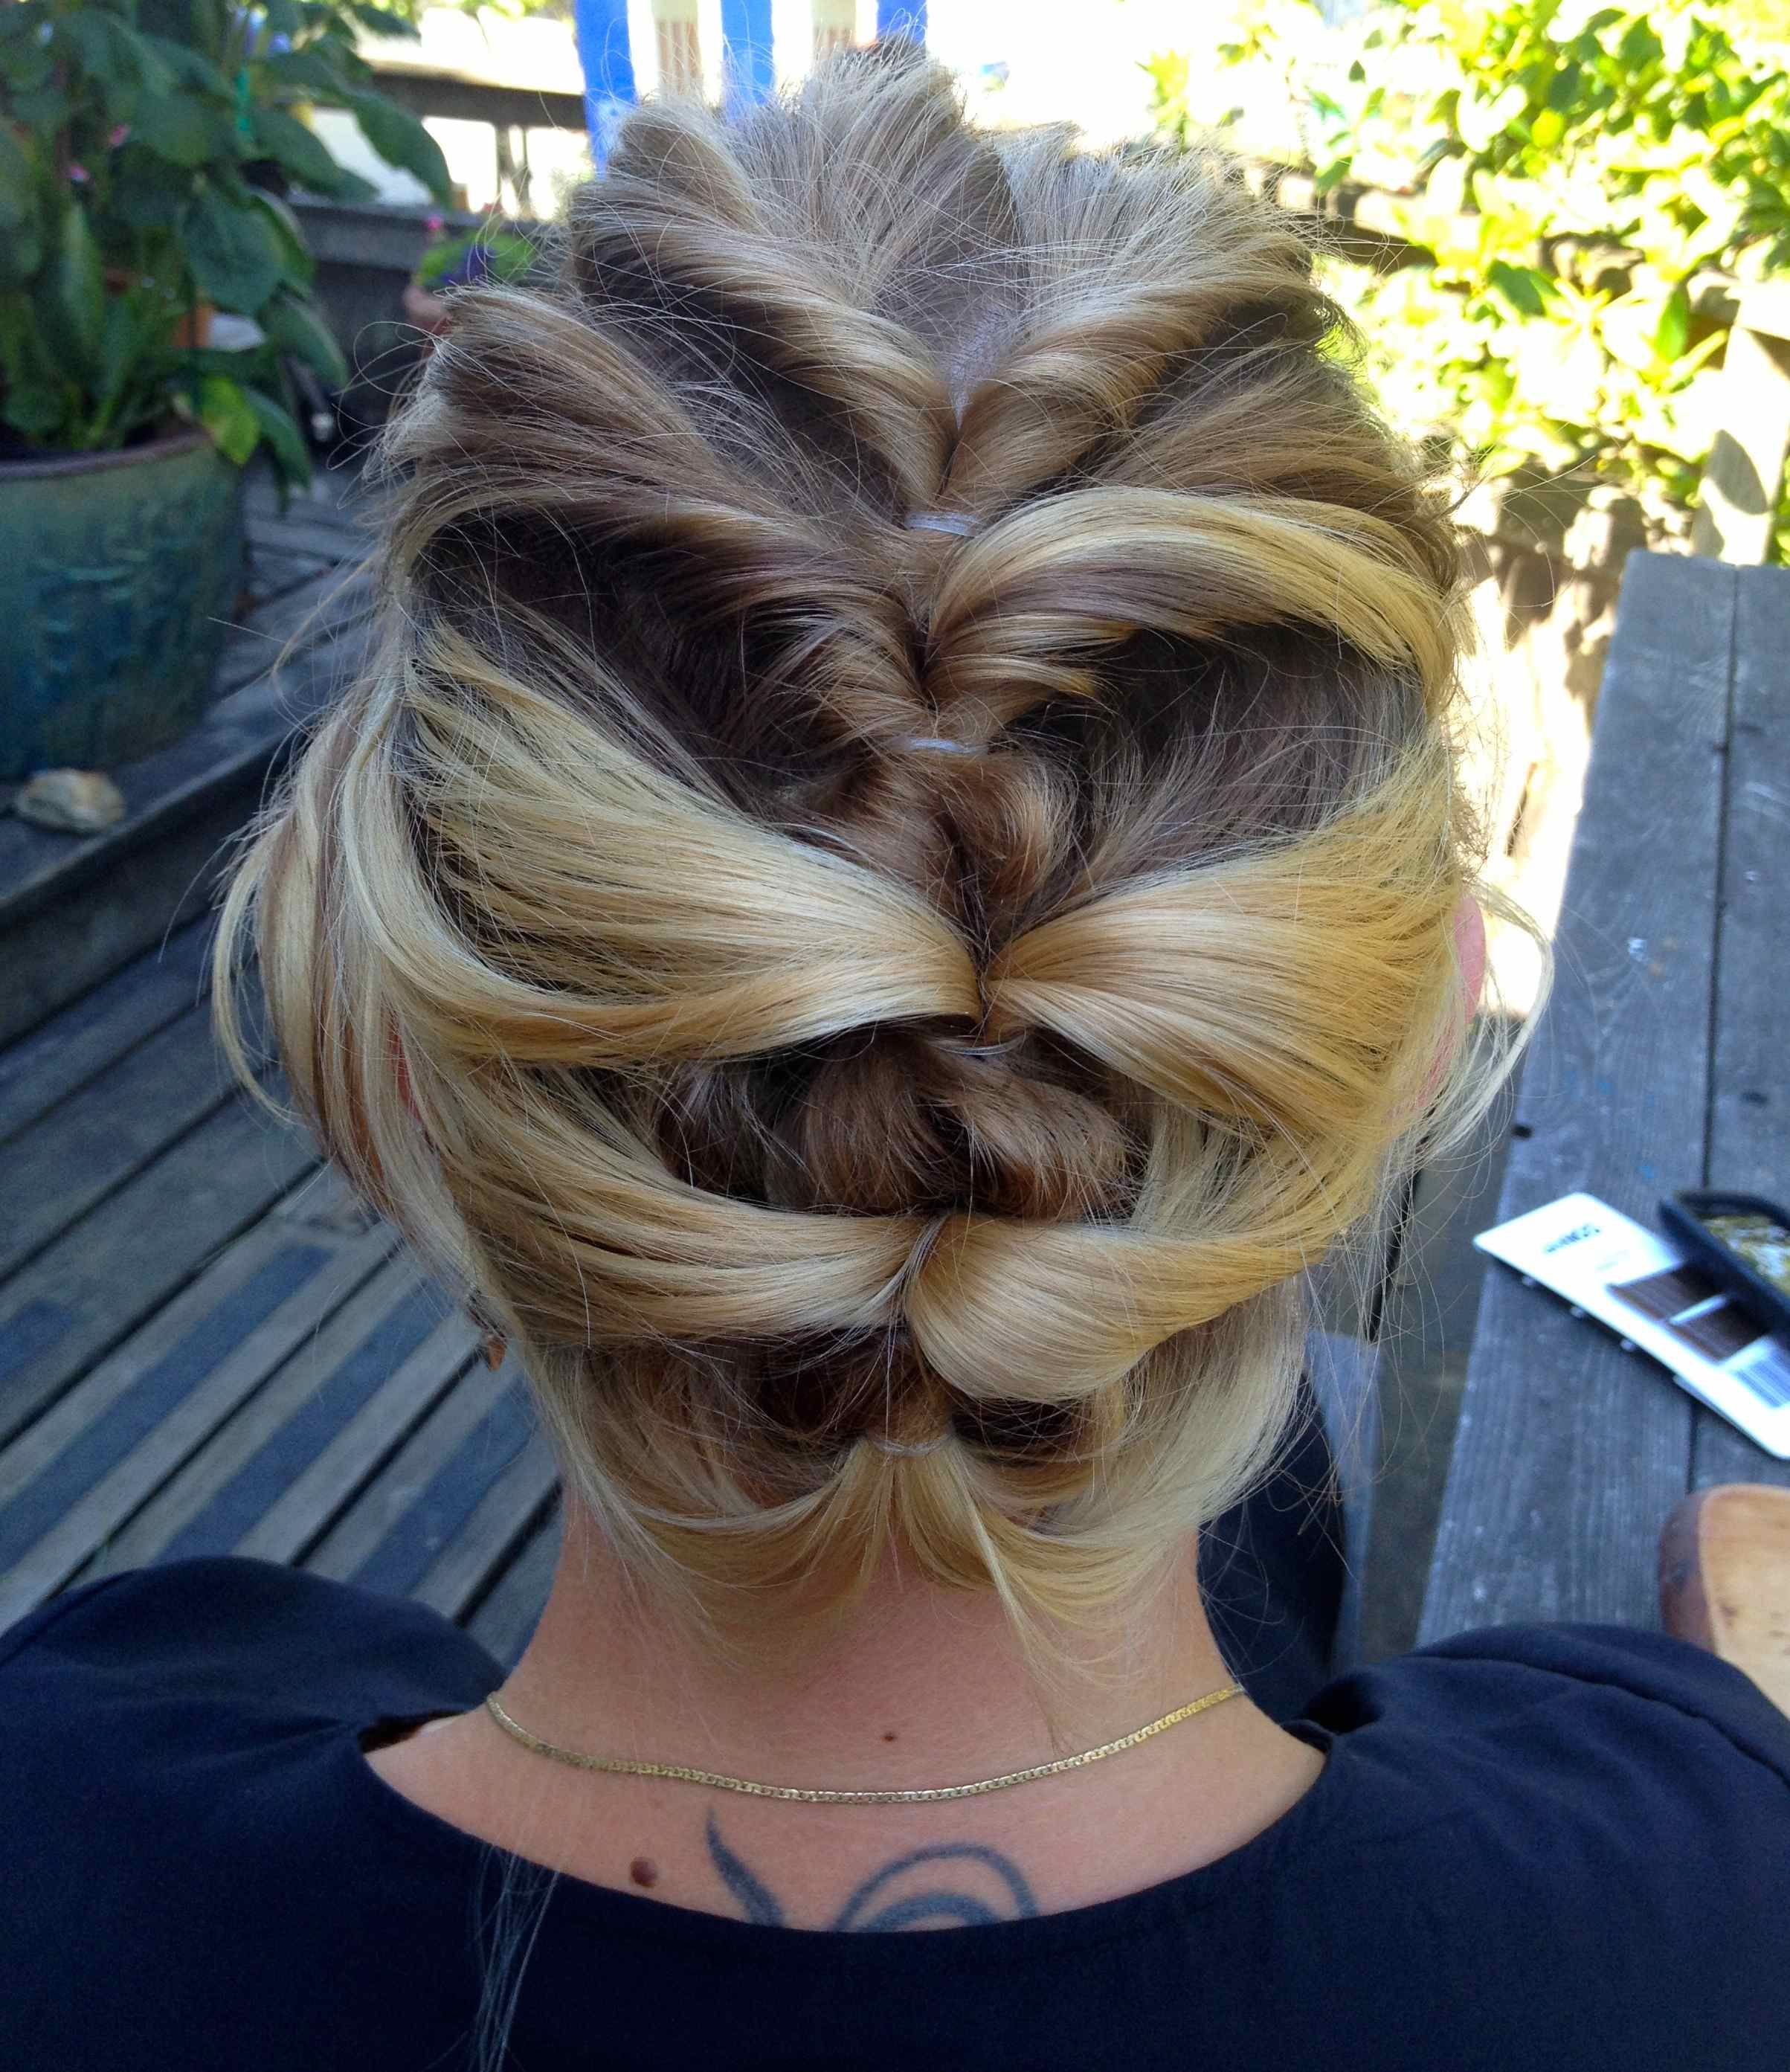 Diy hairstyles for girls from how to hair girl perfectly